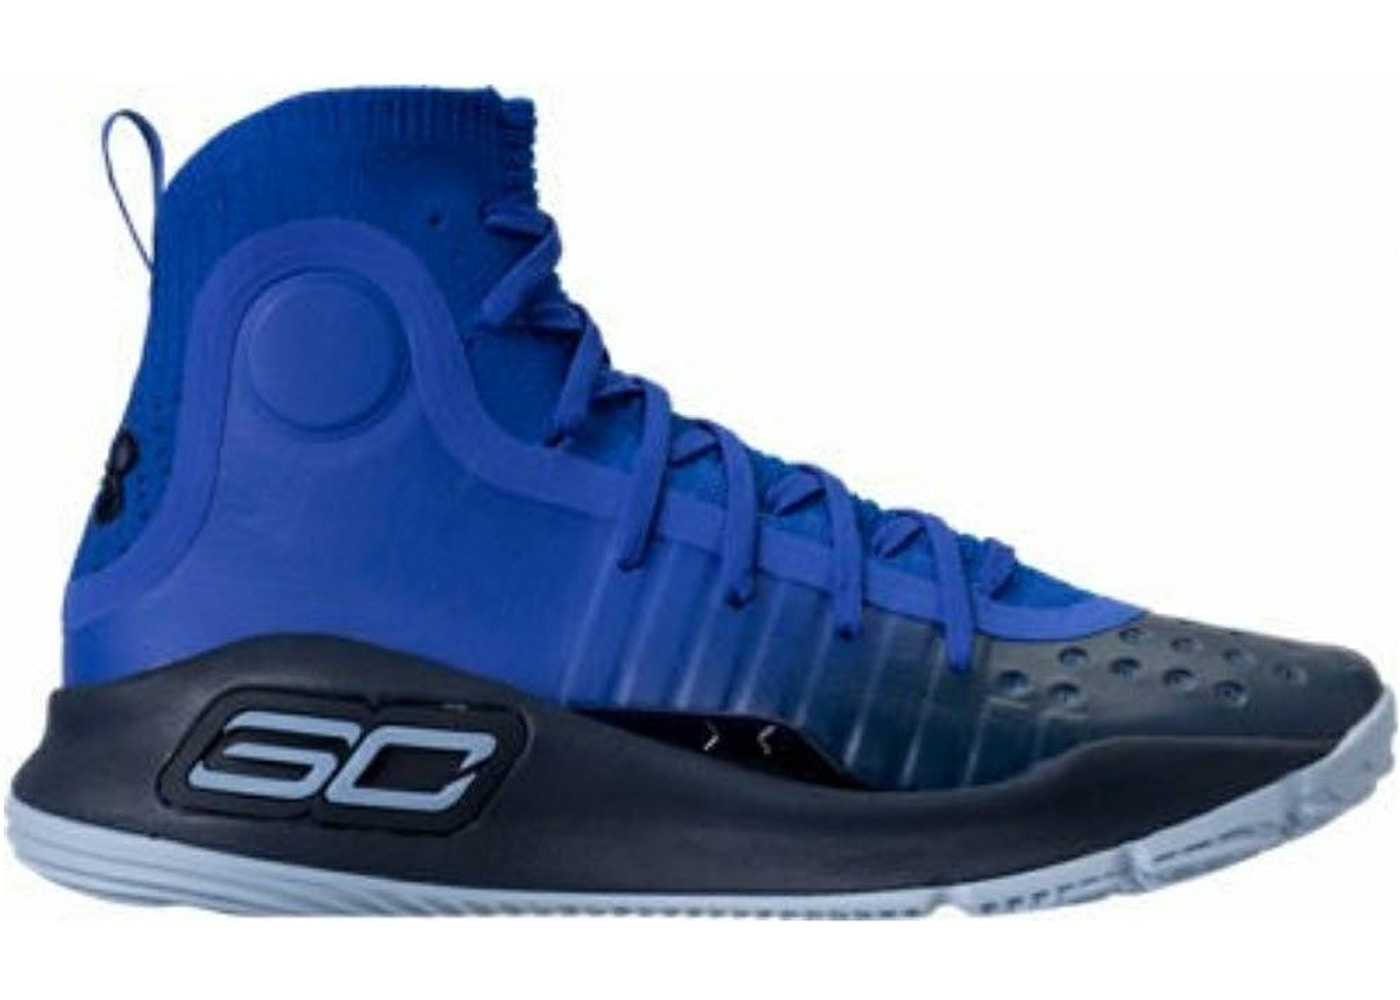 14b2975822f5 Under Armour Curry 4 Team Royal - 1298306-401